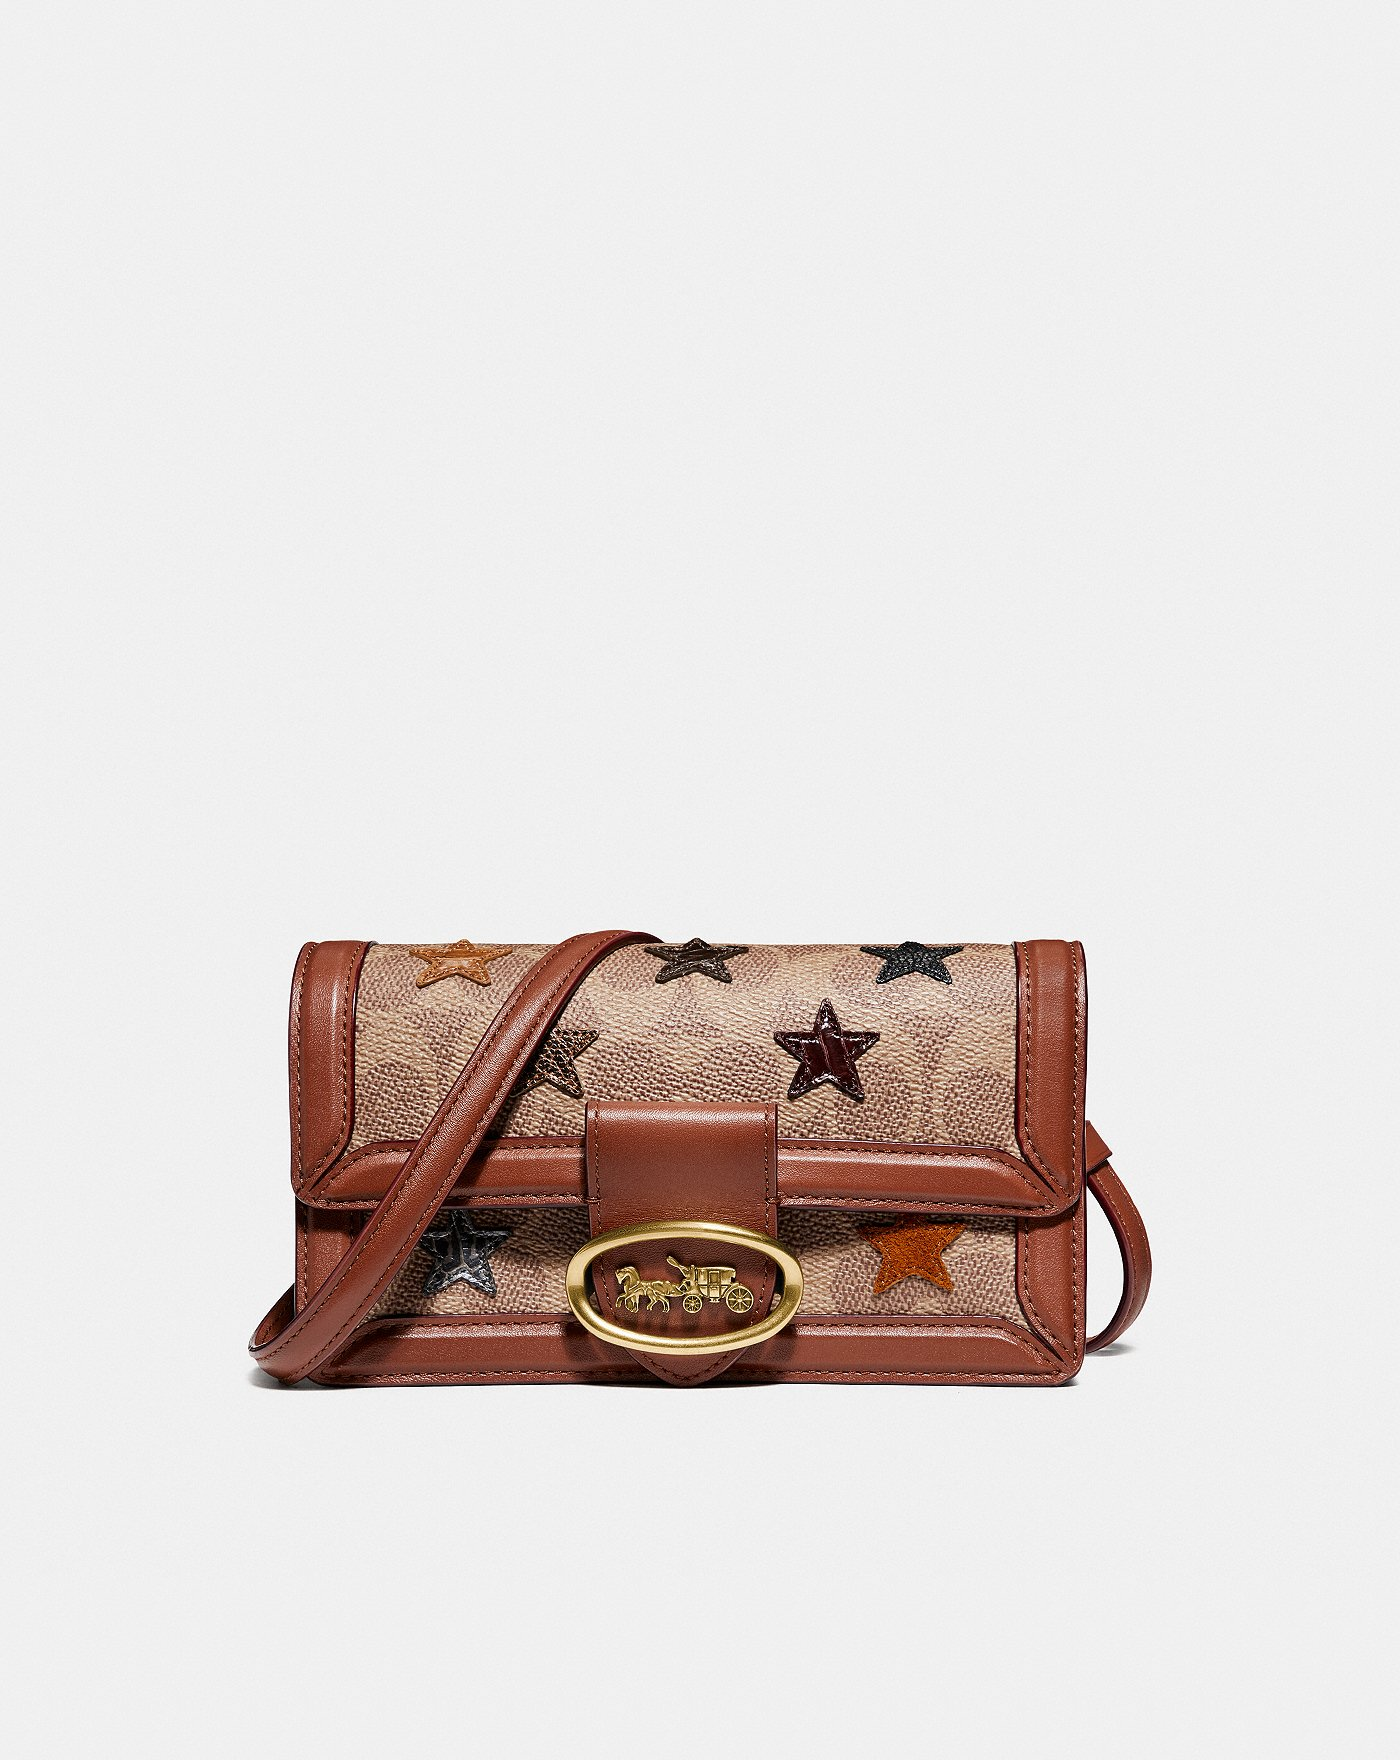 1e8e1d3bee7 Riley Convertible Belt Bag in Signature Canvas With Star Applique and  Snakeskin Detail   COACH